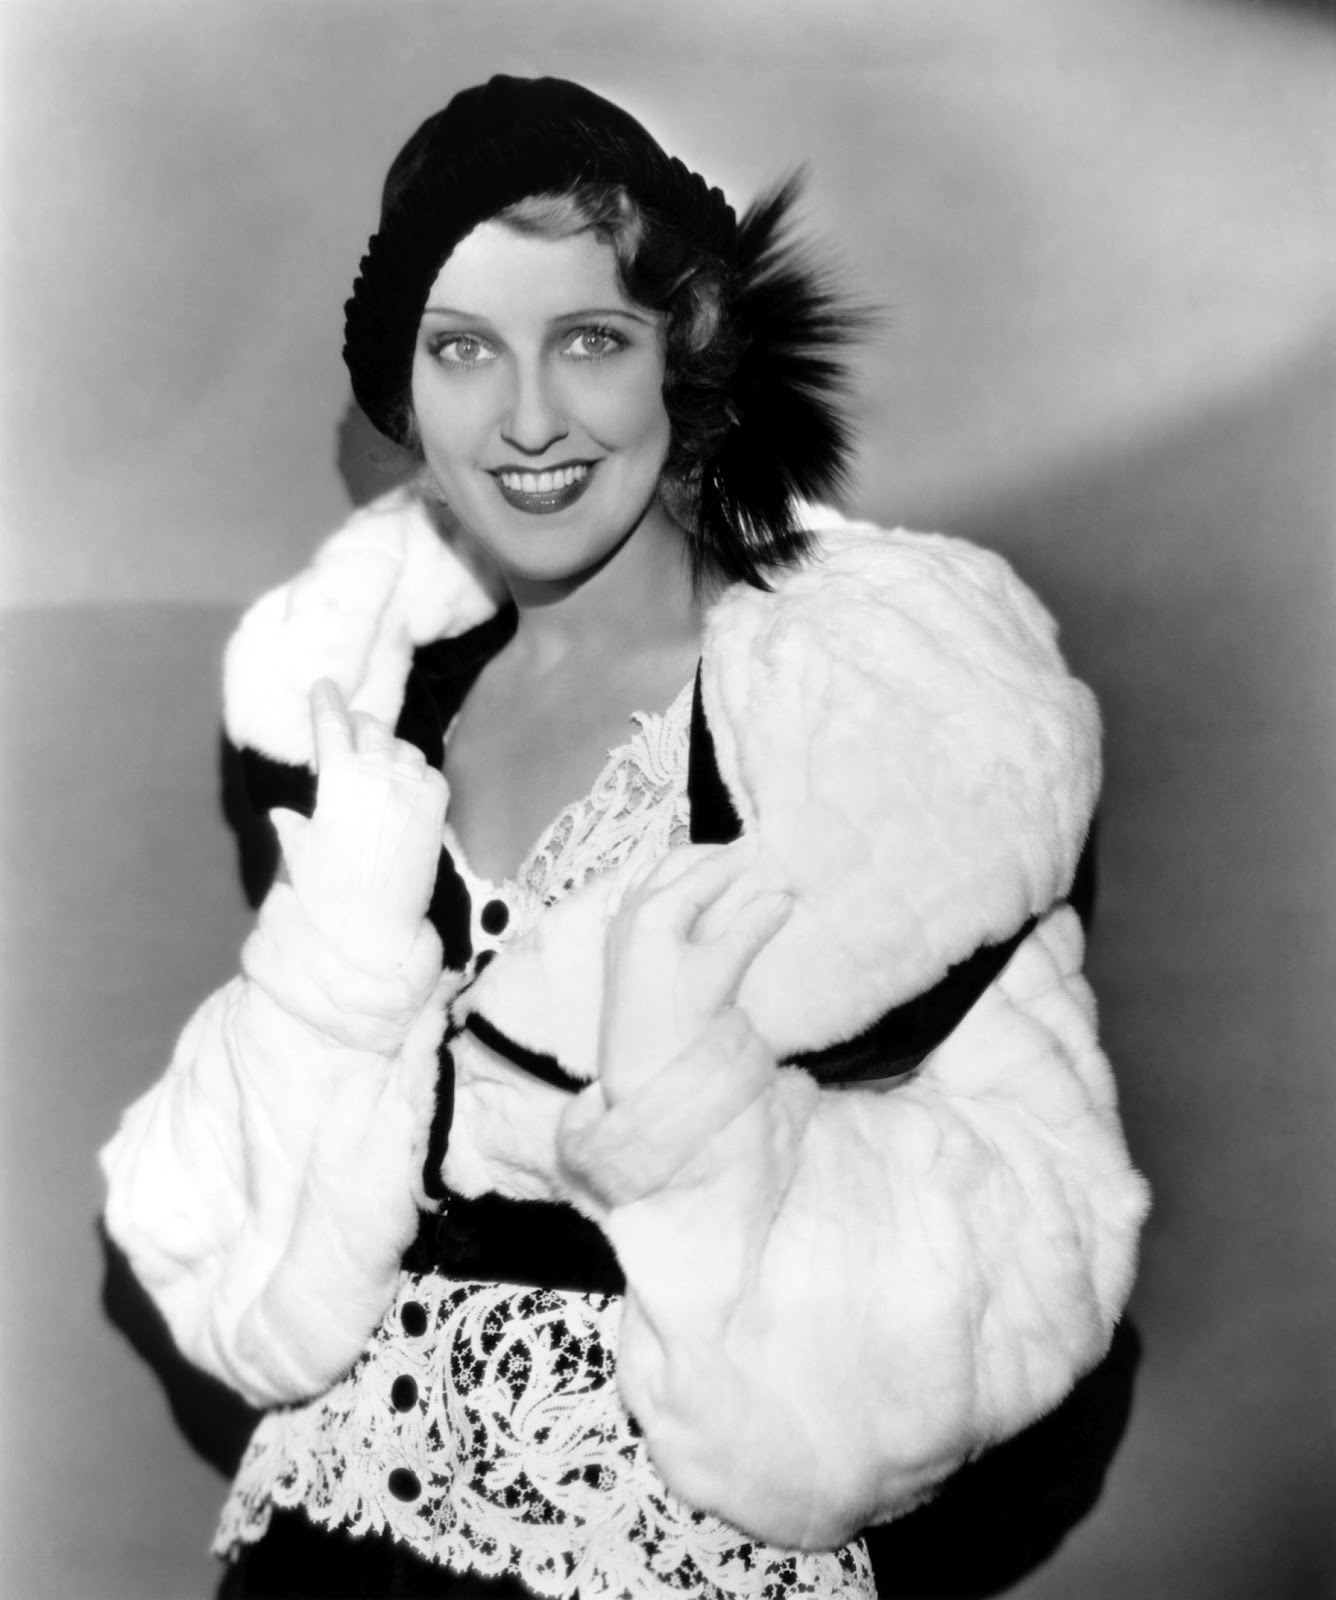 ... jeanette macdonald happy would be 109th birthday to jeanette macdonald